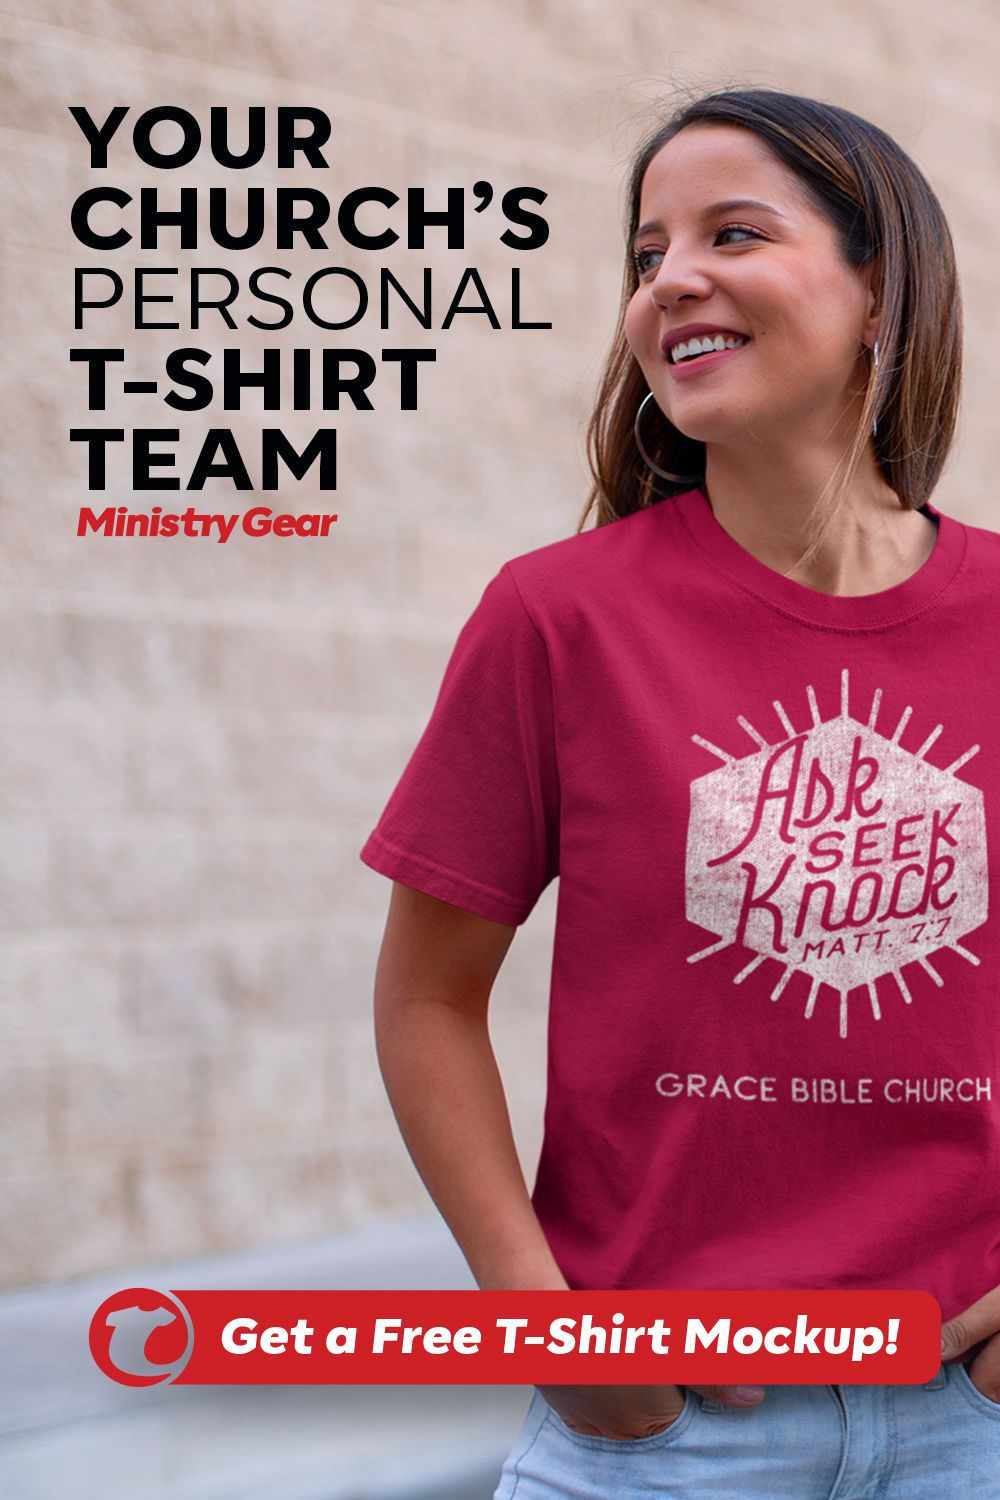 Download Custom T Shirts For Your Church Youth Group Shirts Church Shirt T Shirt